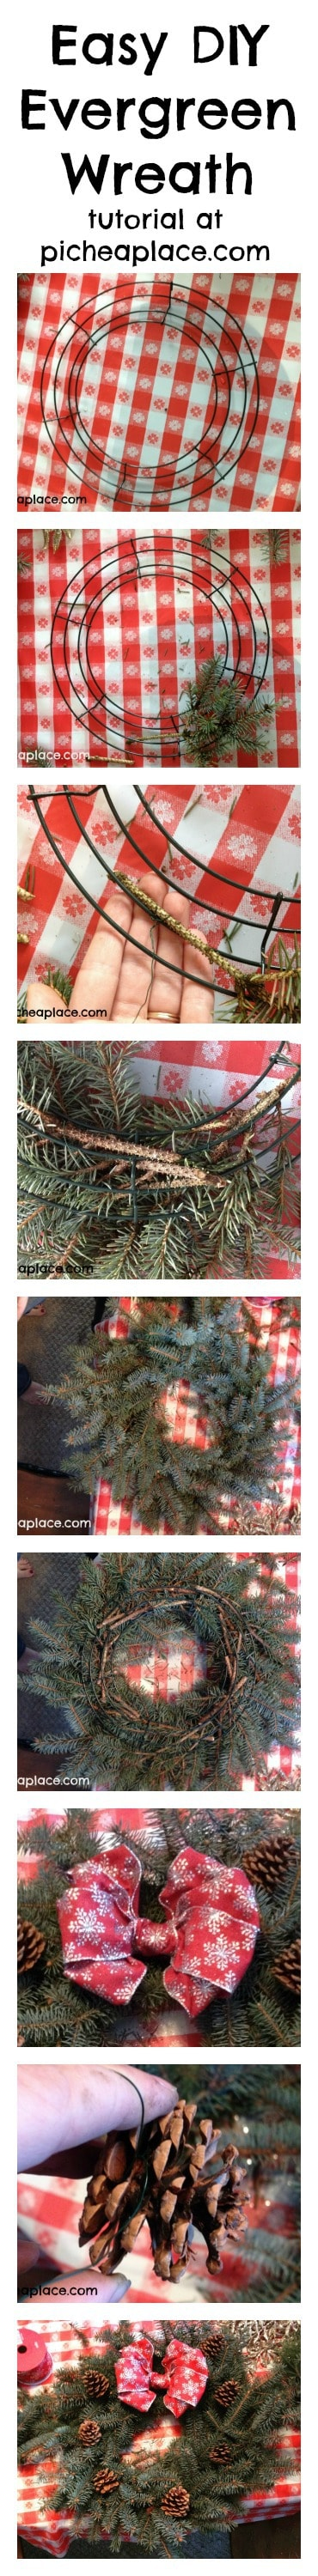 Easy DIY Evergreen Wreath Tutorial at PicheaPlace.com